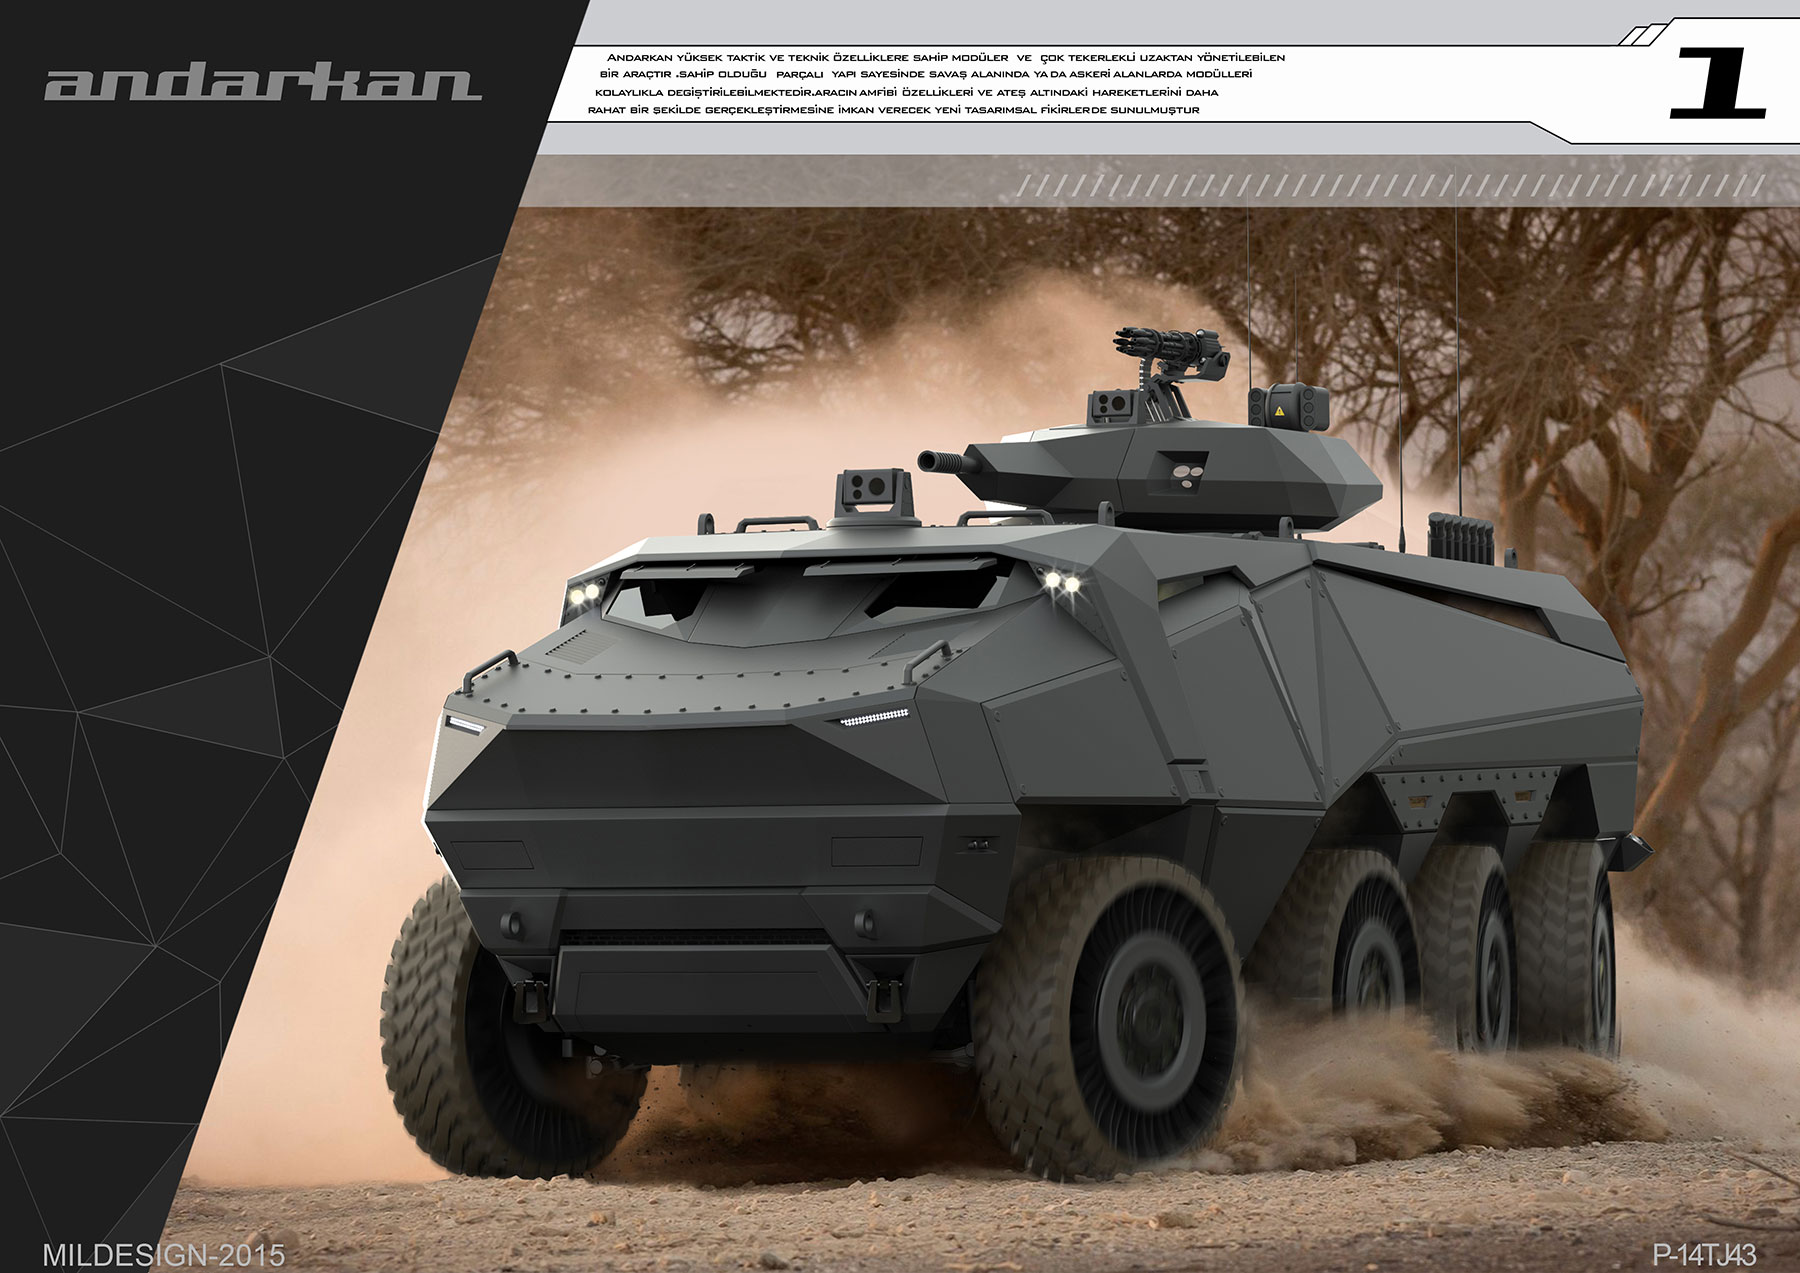 tip jet helicopter with The Concept Of A New Andarkan Wheeled Armoured Vehicles on 115 additionally The Concept Of Stealth Fighter F 15j For The Japanese Air Force besides A310 besides The Concept Of A New Andarkan Wheeled Armoured Vehicles further Scoop Airbus Helicopters Introduceert H160.